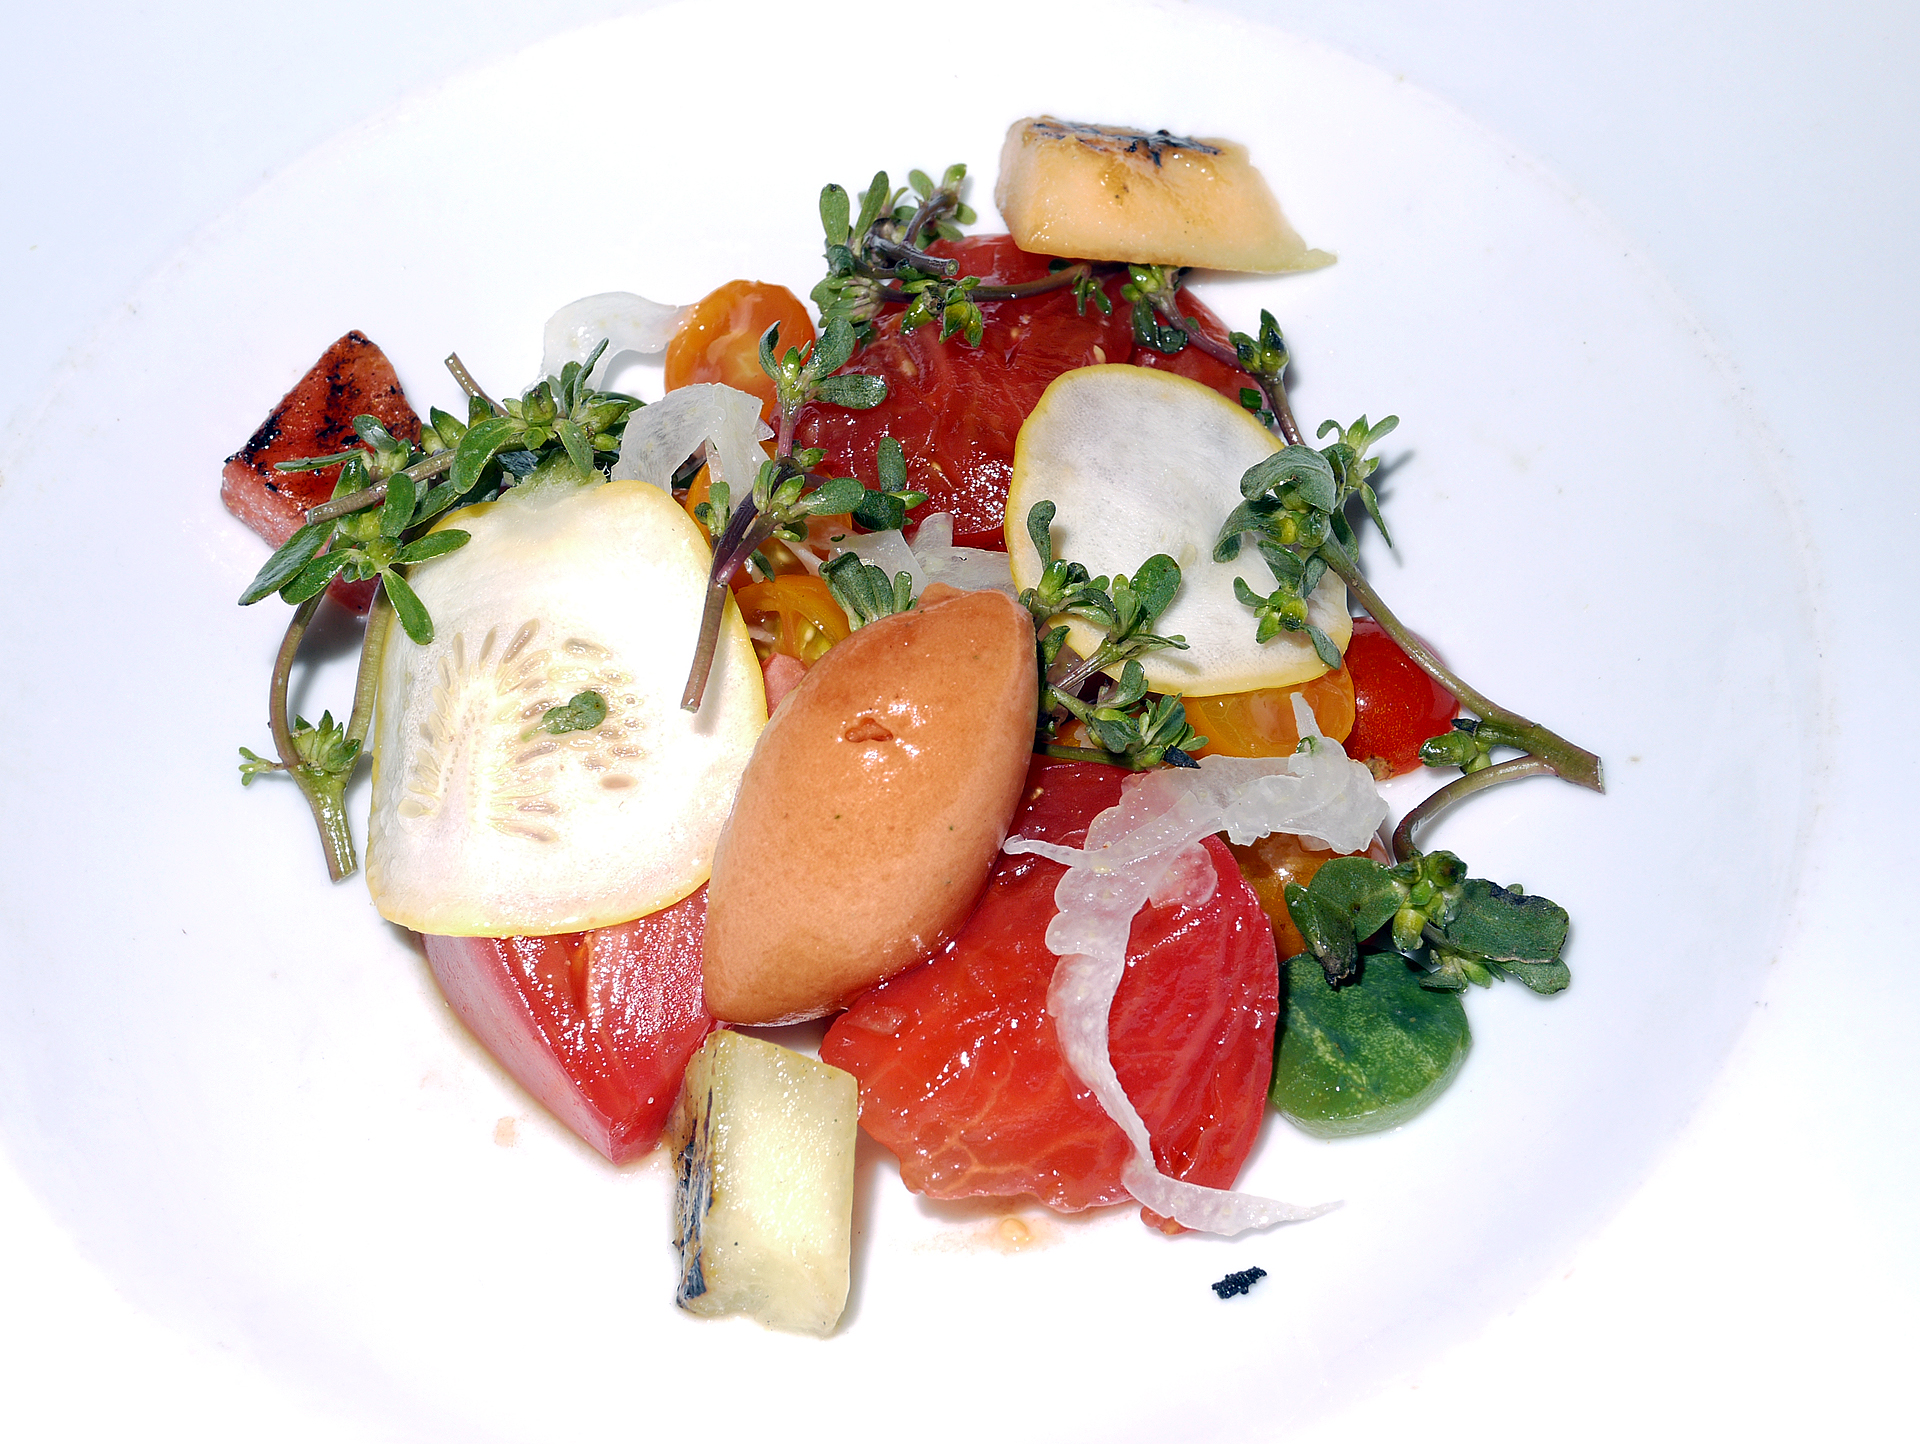 Heirloom Tomato Salad with cucumbers and purslane